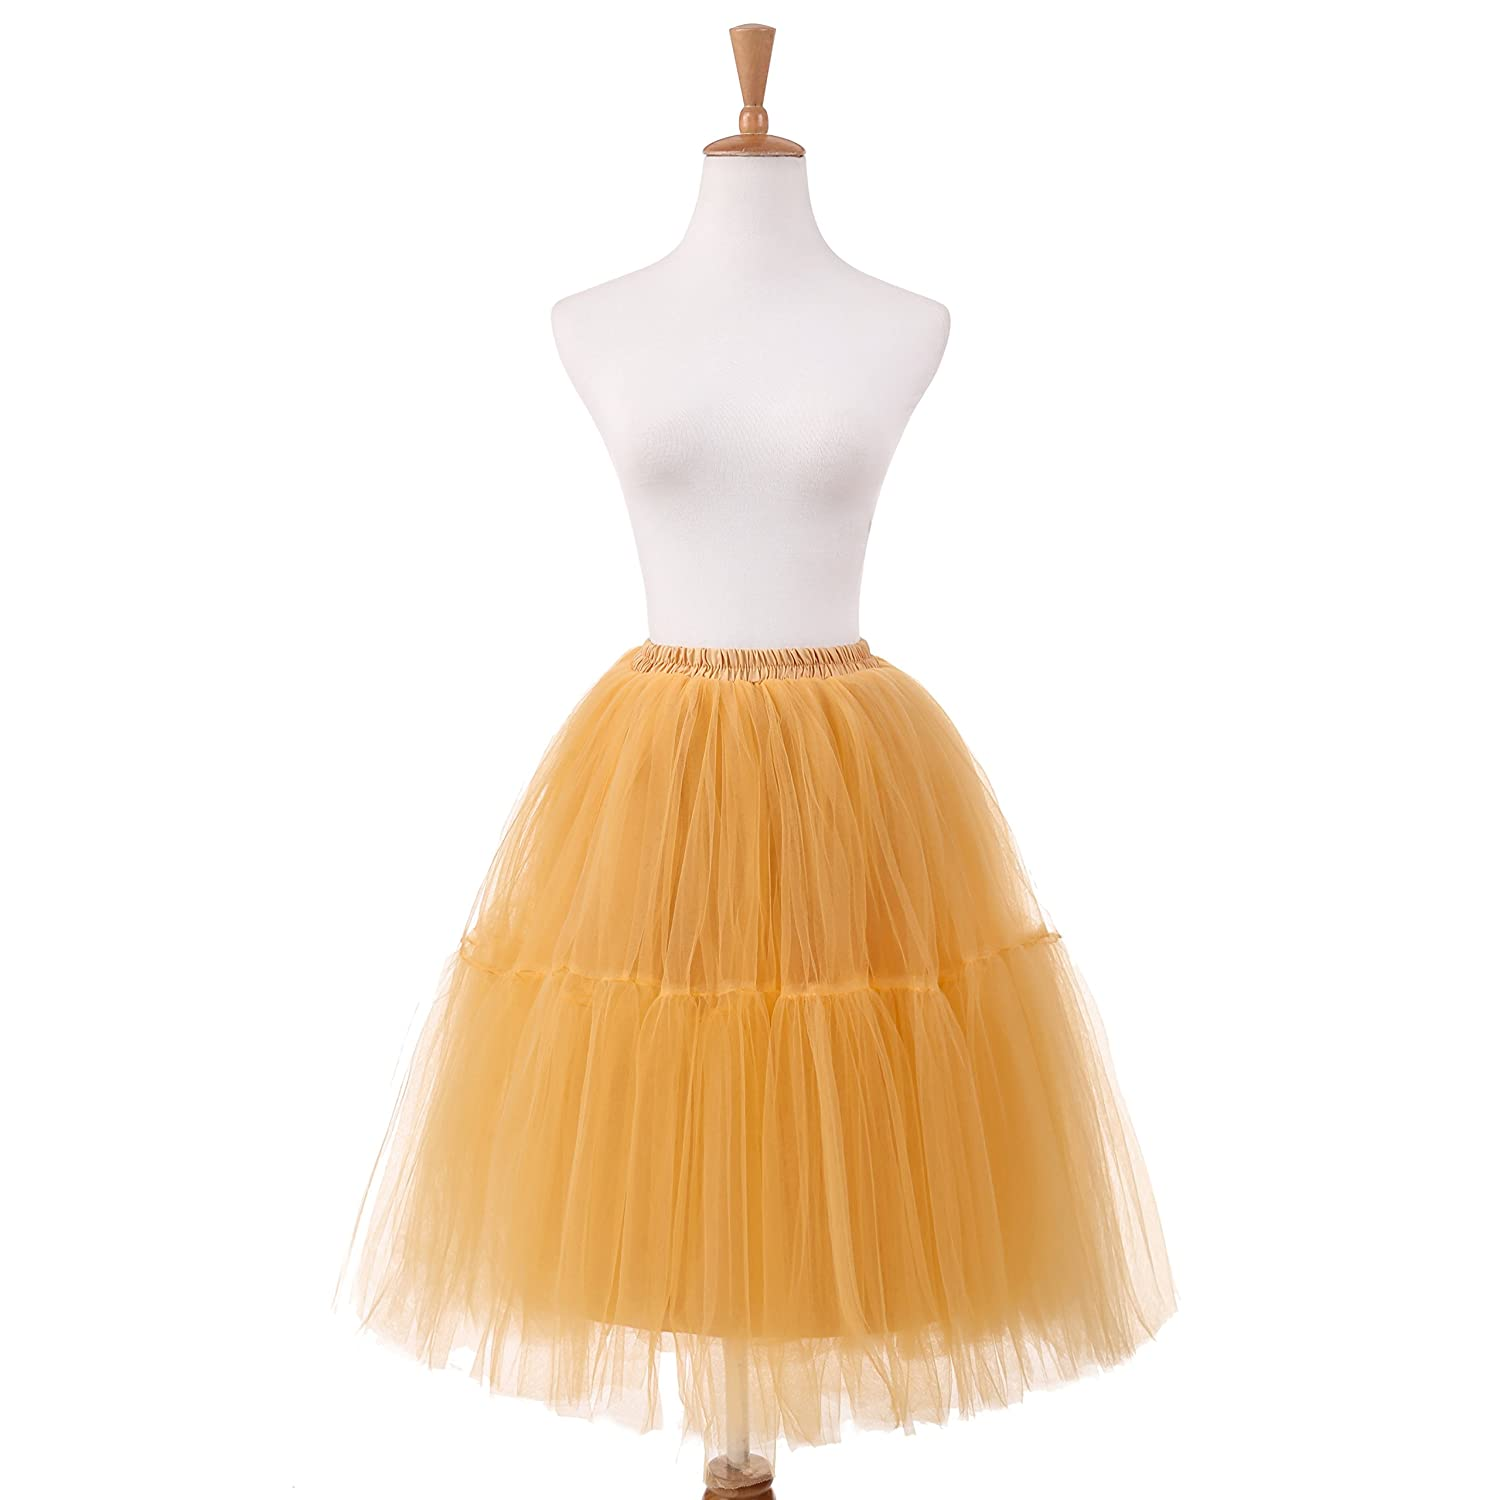 NUOMIQI 5-Layer Princess Midi Knee Length Tutu Skirt Crinoline for Prom Party